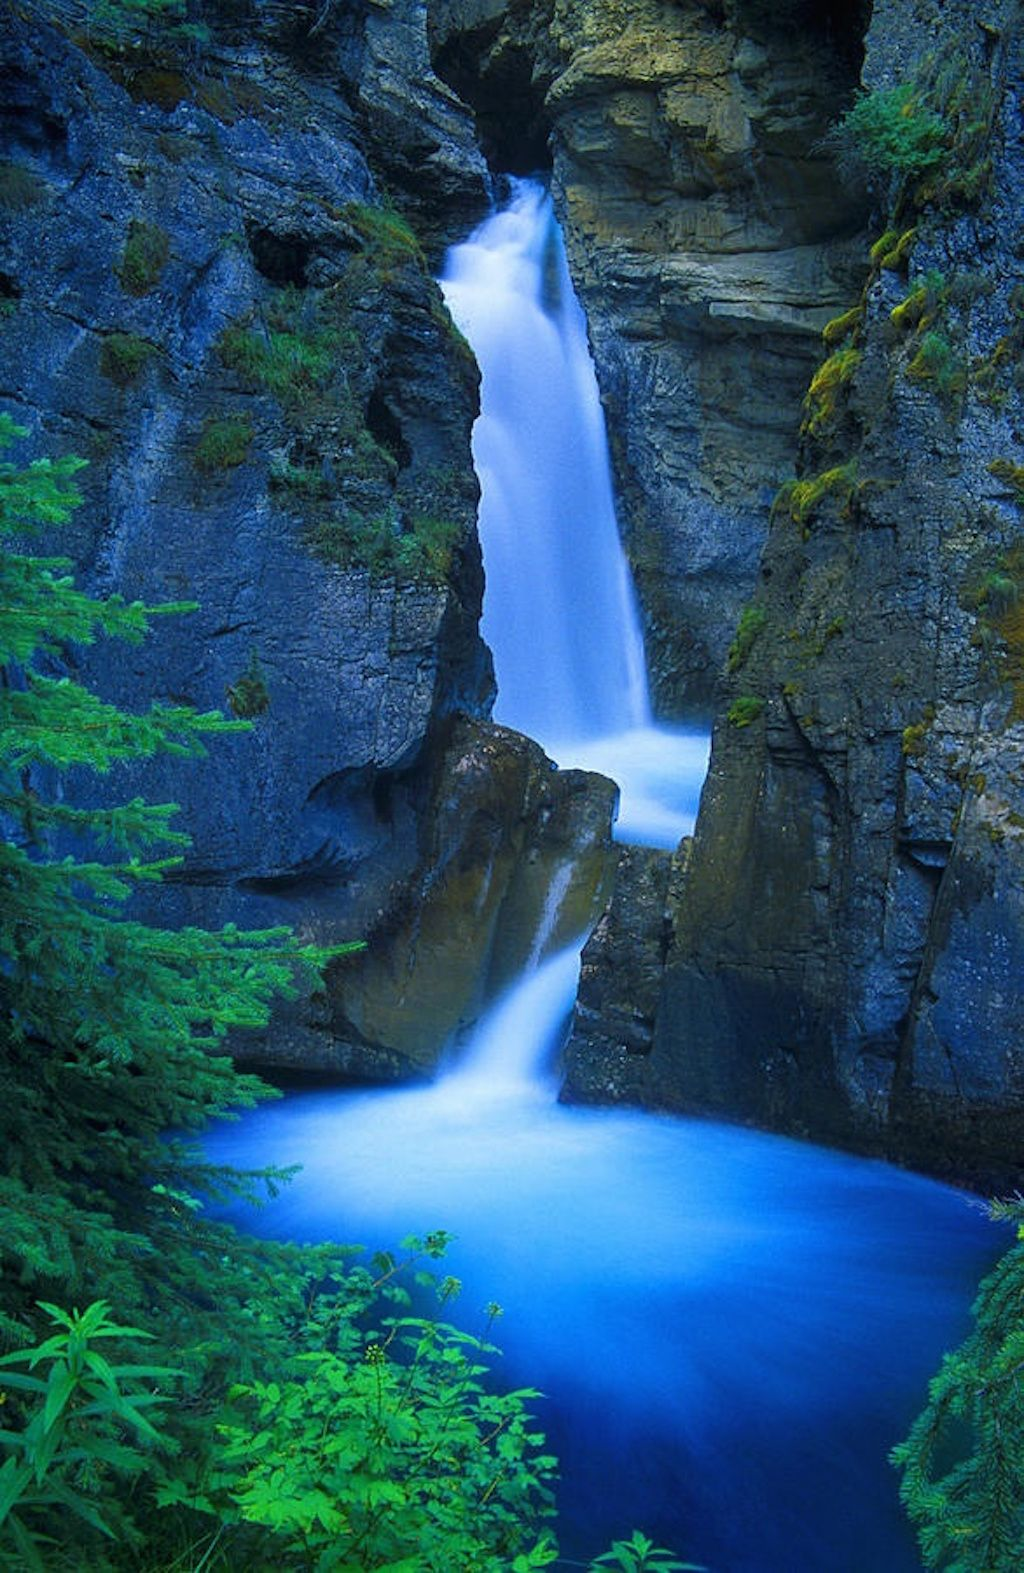 Johnston canyon banff alberta canada most amazing for Most spectacular waterfalls